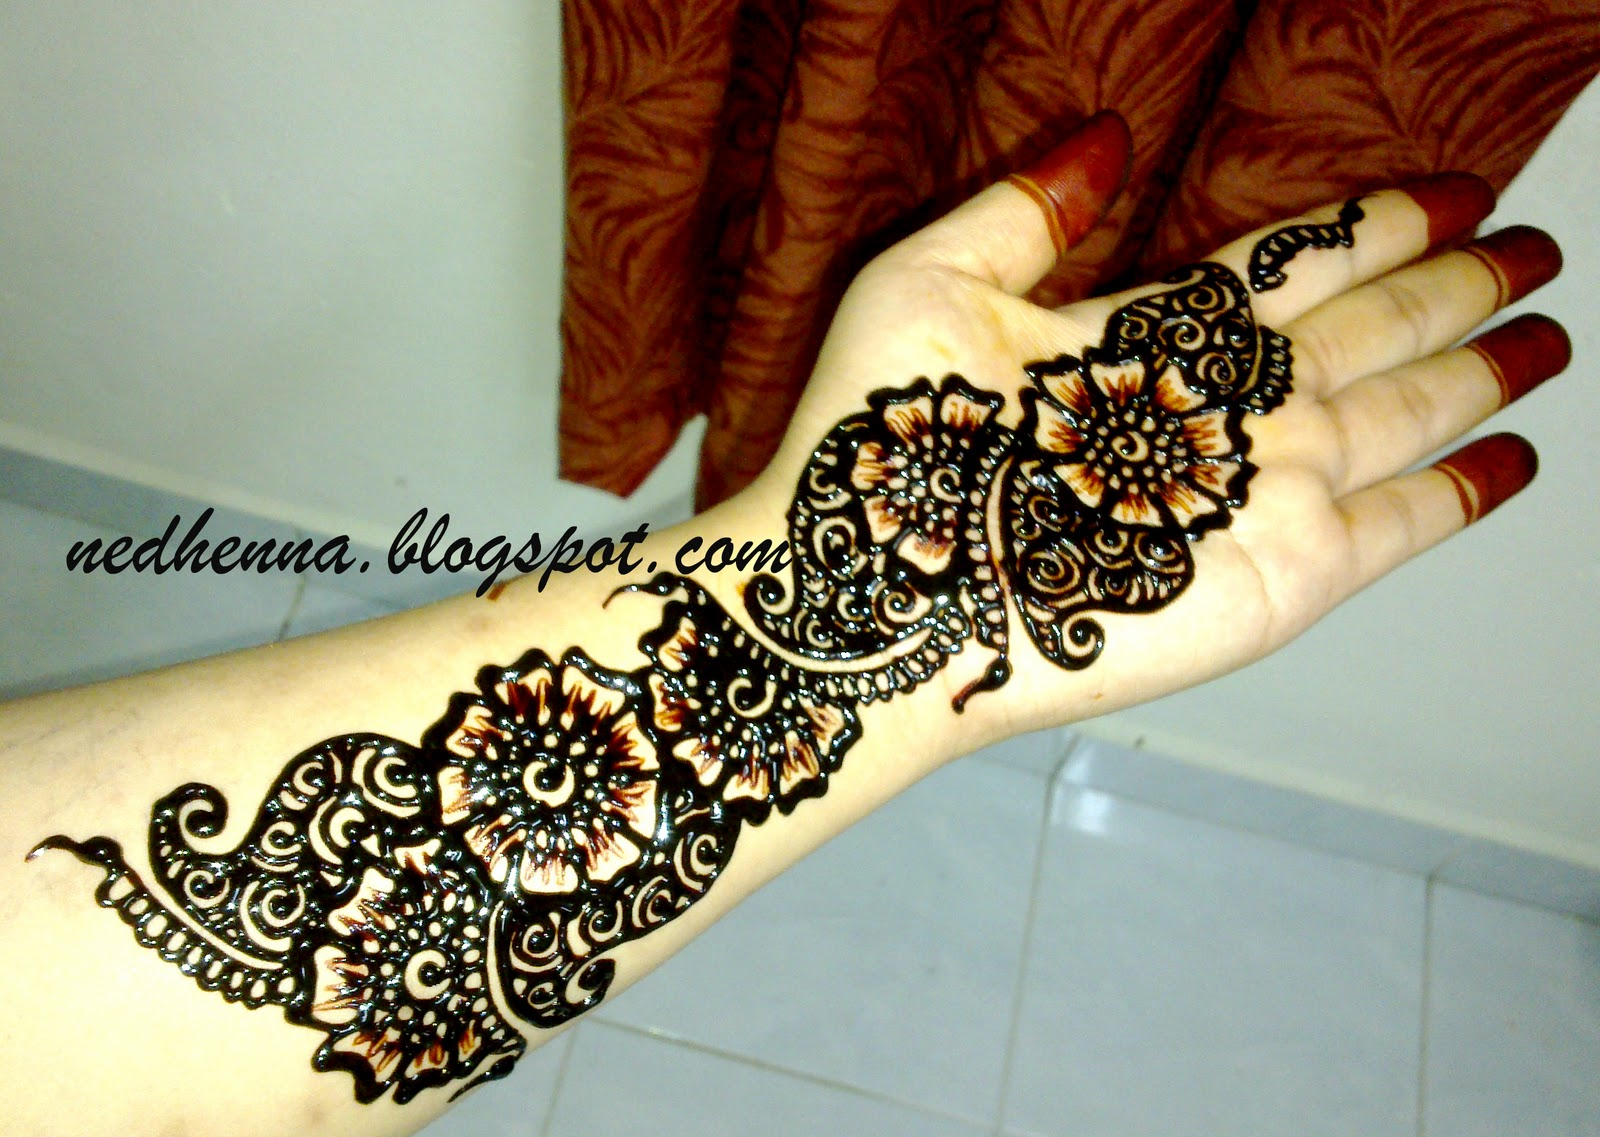 Ned Henna 1st New Design Nedhenna In 2012